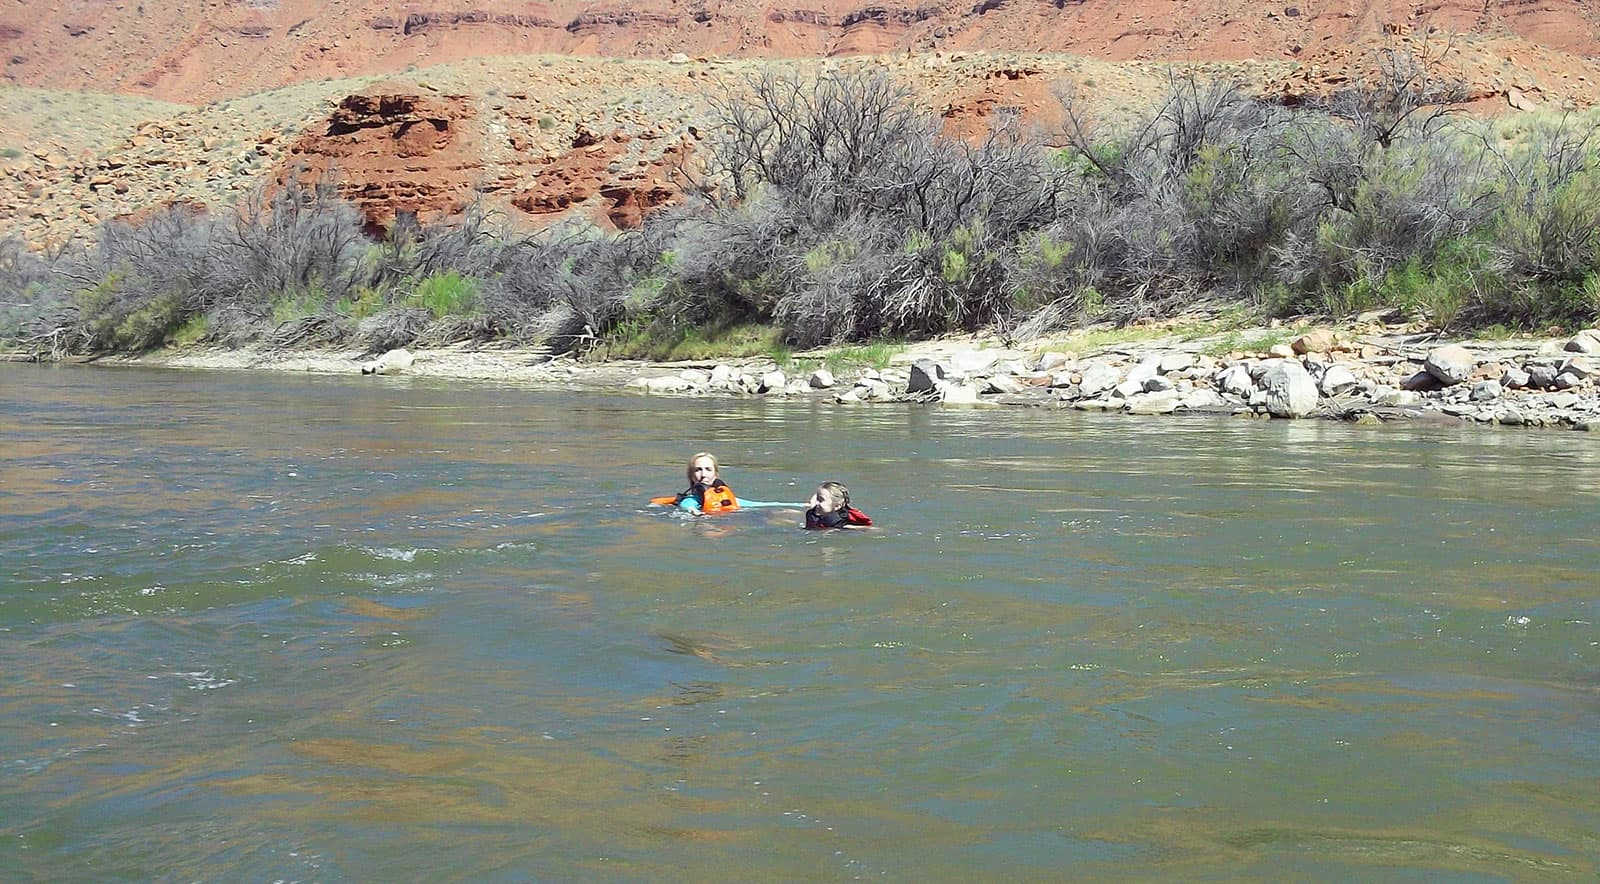 Teyla floating in the Colorado River